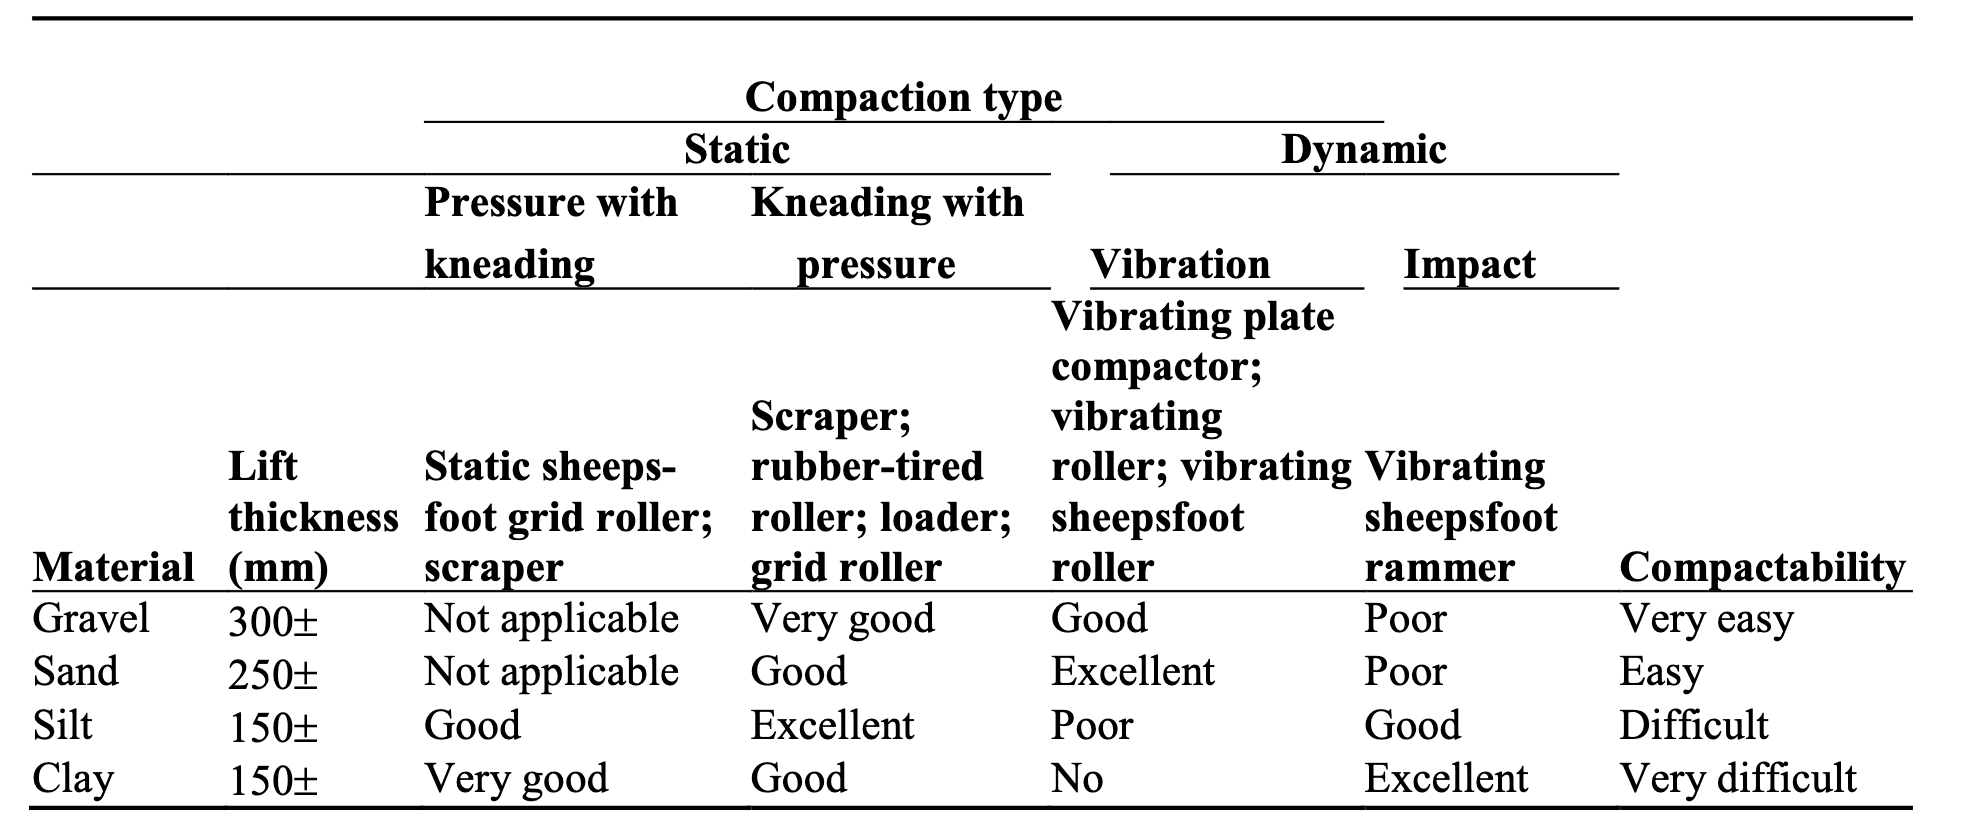 Comparison of Field Compactors for Various Soil Types